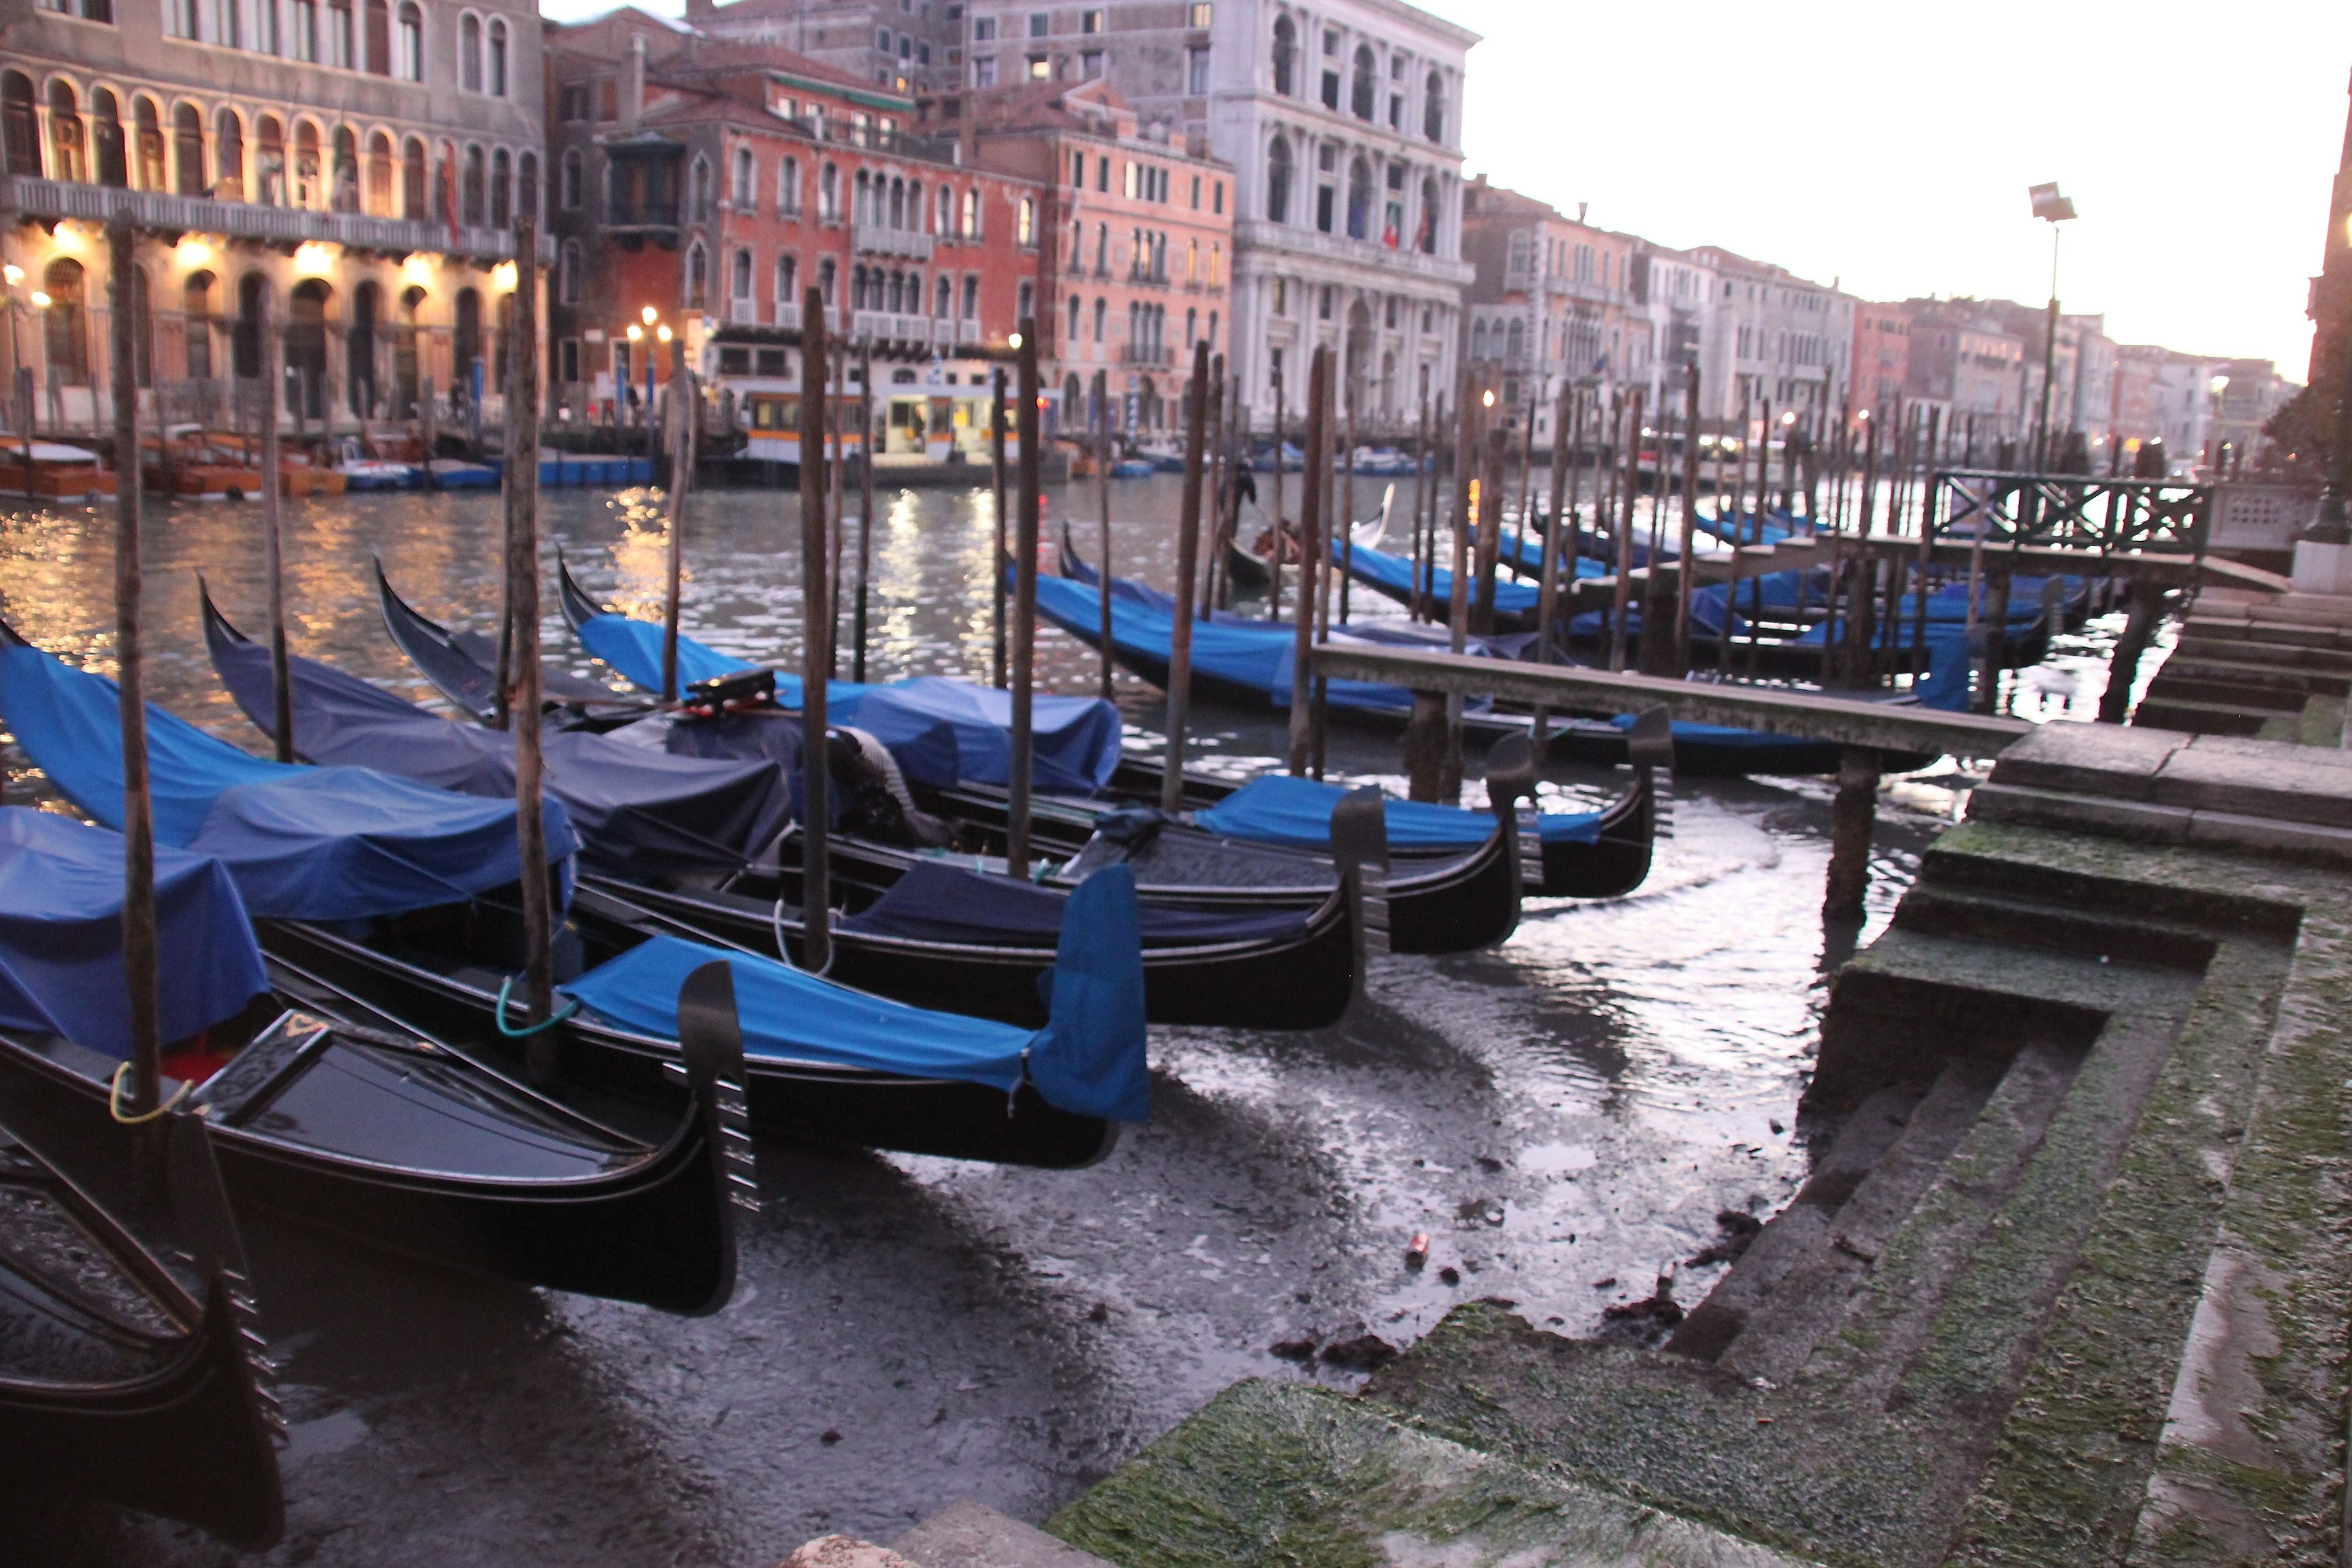 Gondole moored up on the muddy banks of the Grand Canal